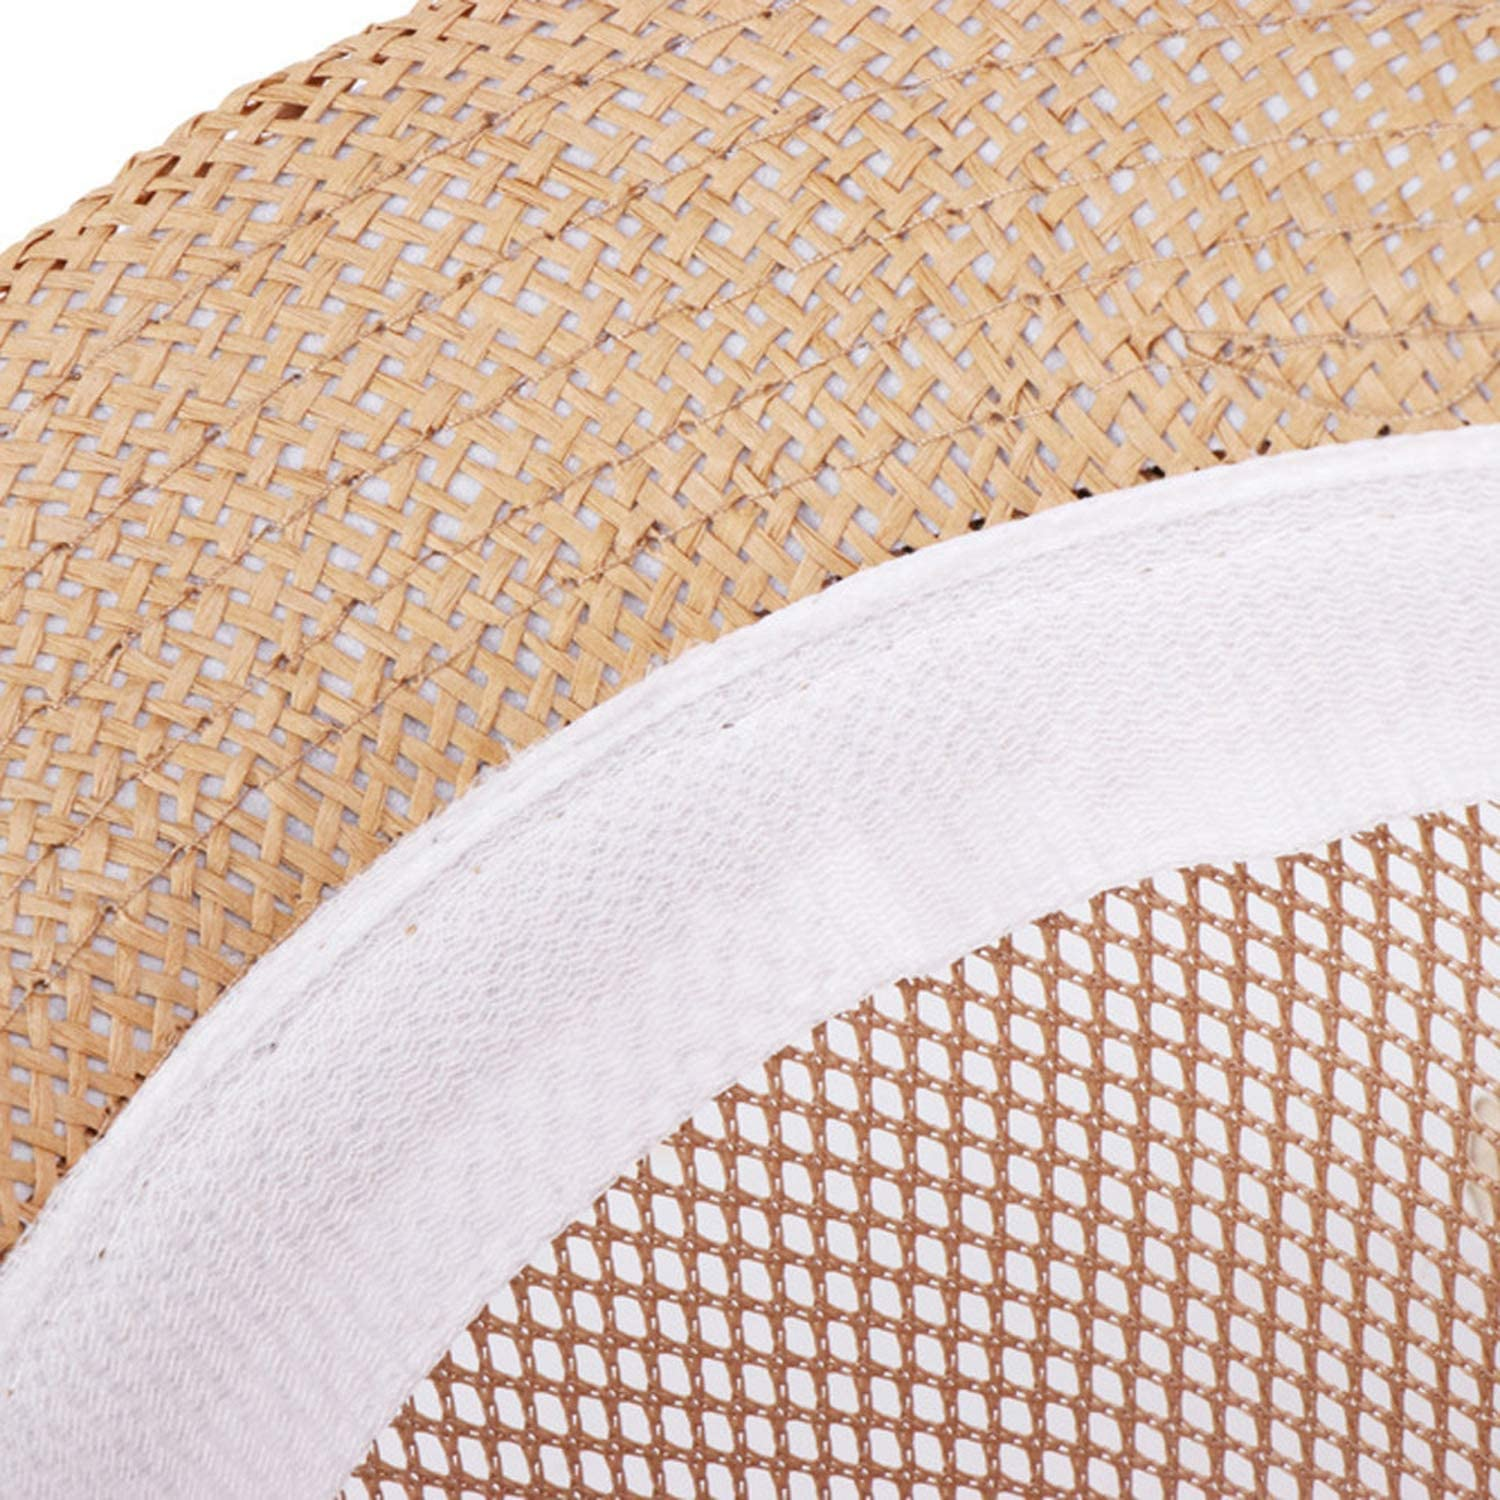 Mesh hat Cap Men Quick Dry Outdoor Summer Sun hat chapeu Casual Sports Letter mesh Men Baseball caps Flat White